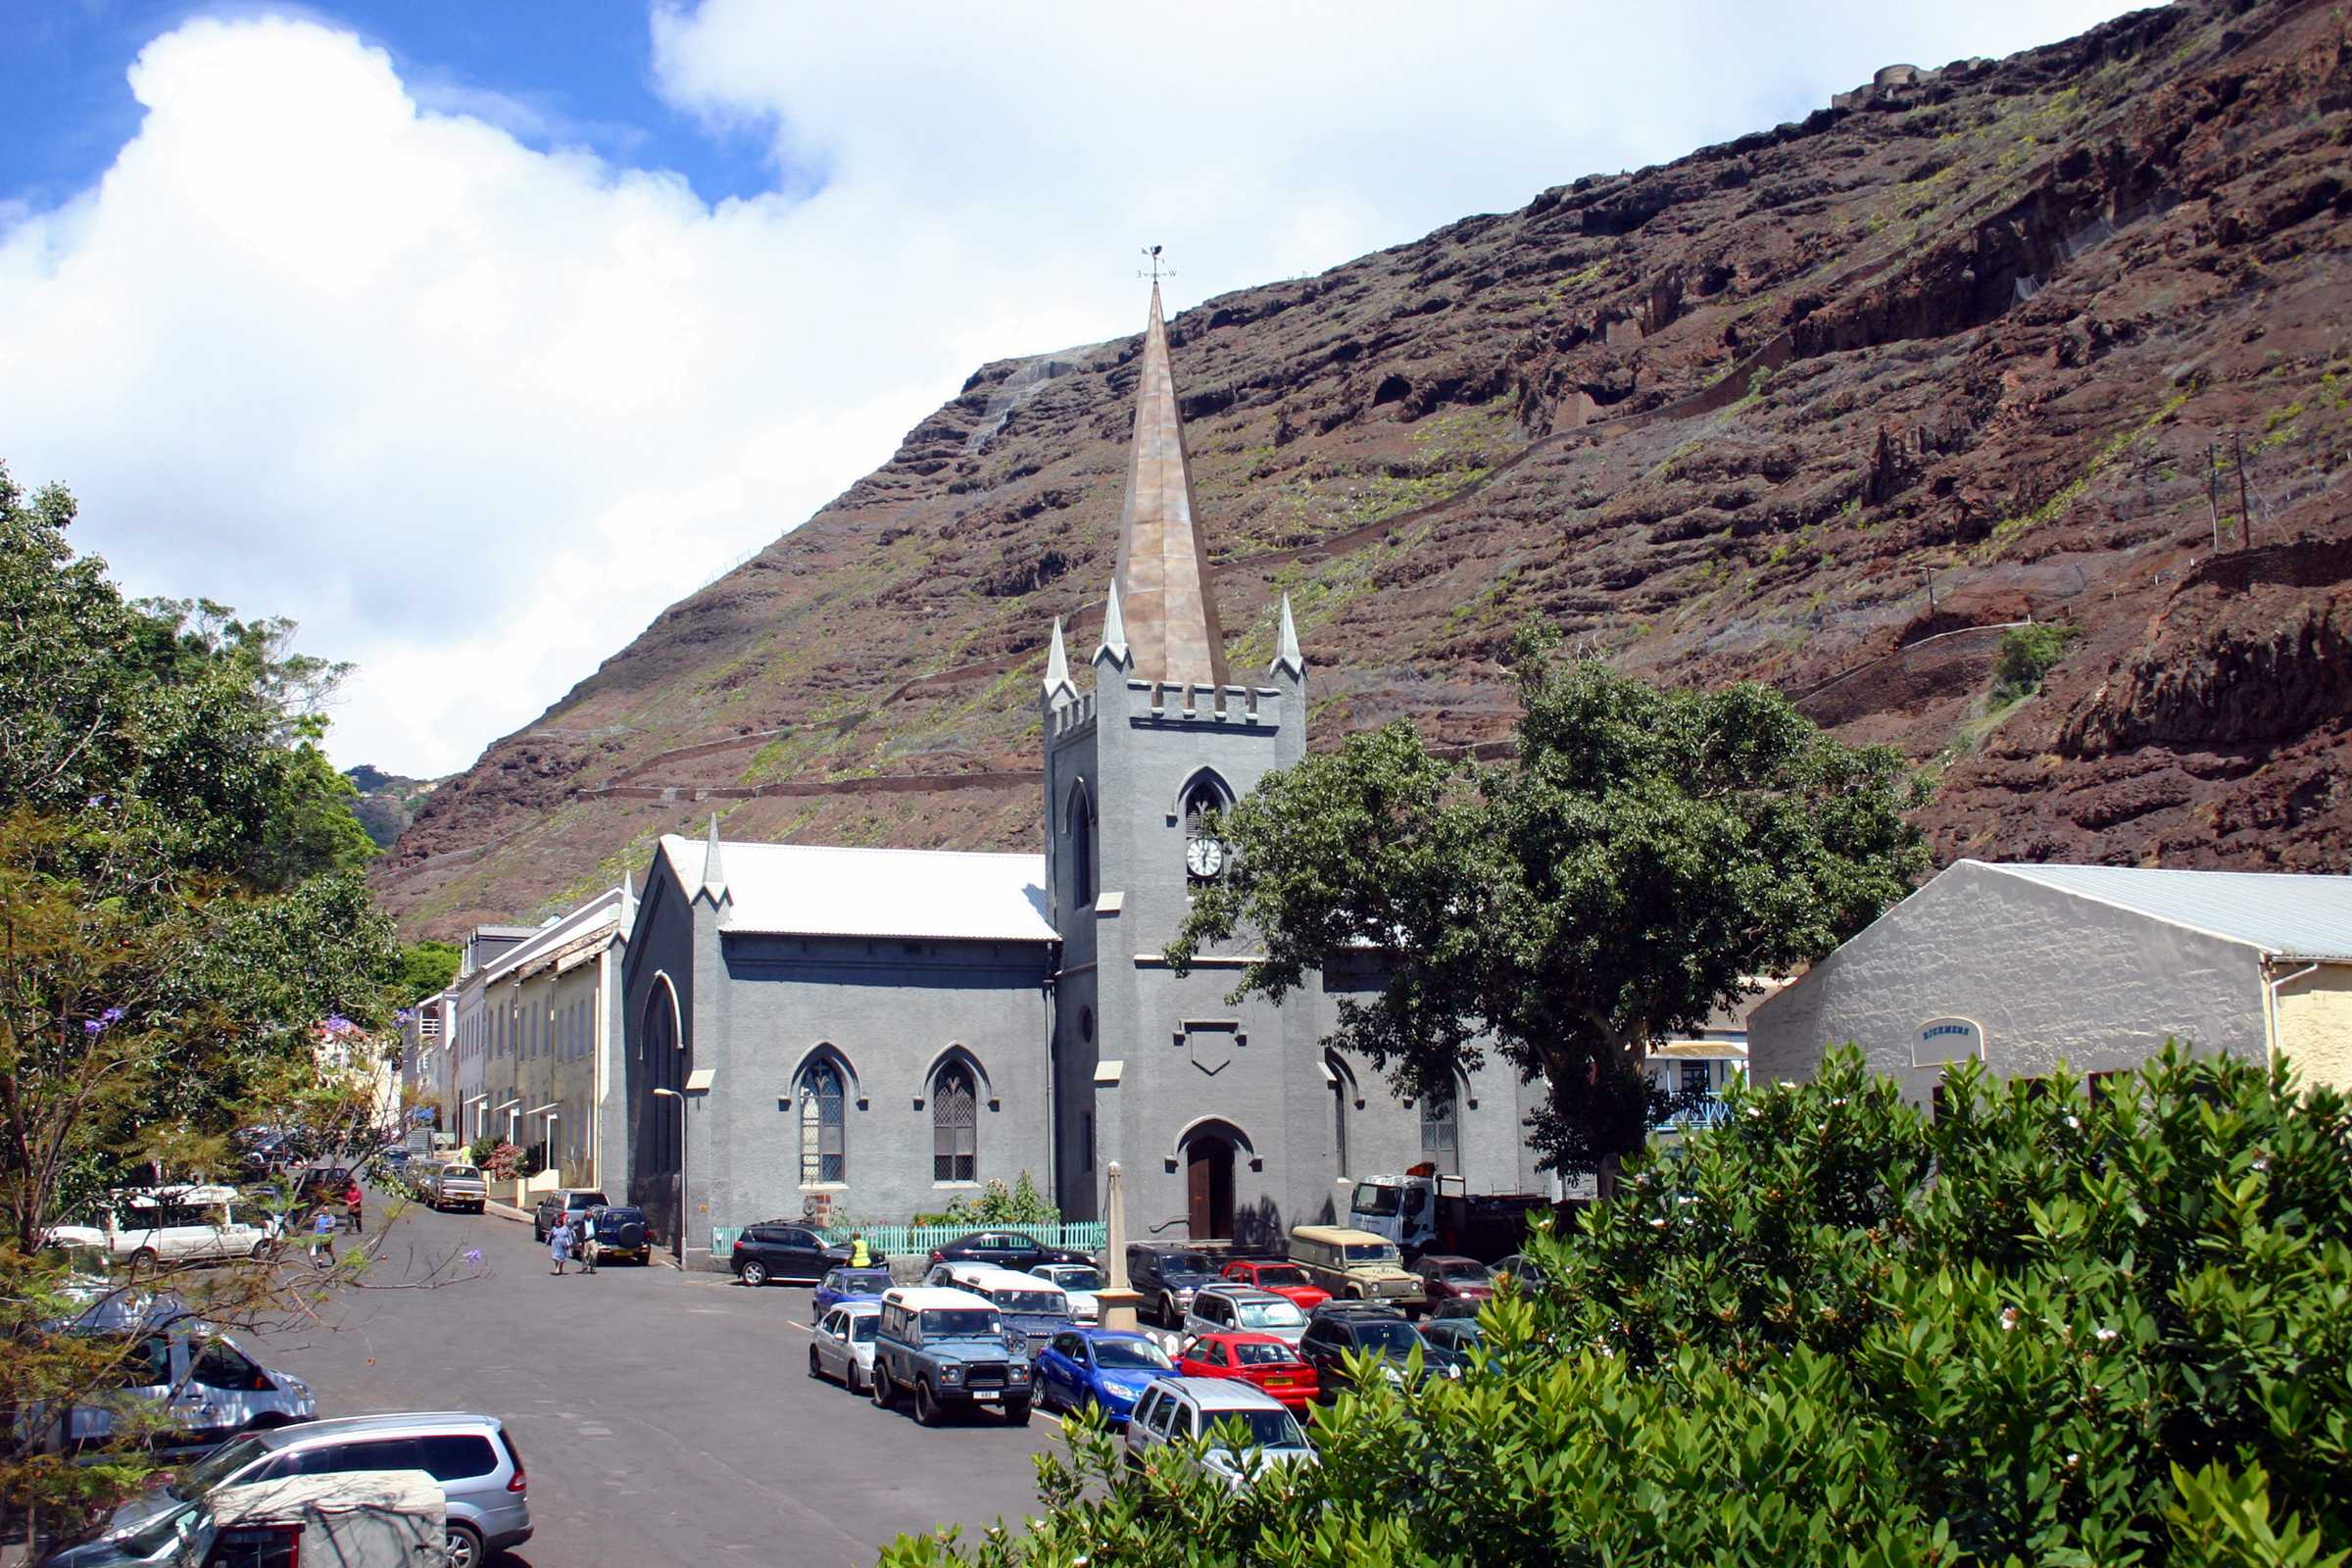 saint helena island catholic singles Jamestown, st helena — the gates of chaos, lot's wife, old woman's valley, man and horse cliffs these are the names of places on st helena, an otherworldly atlantic ocean island far from.